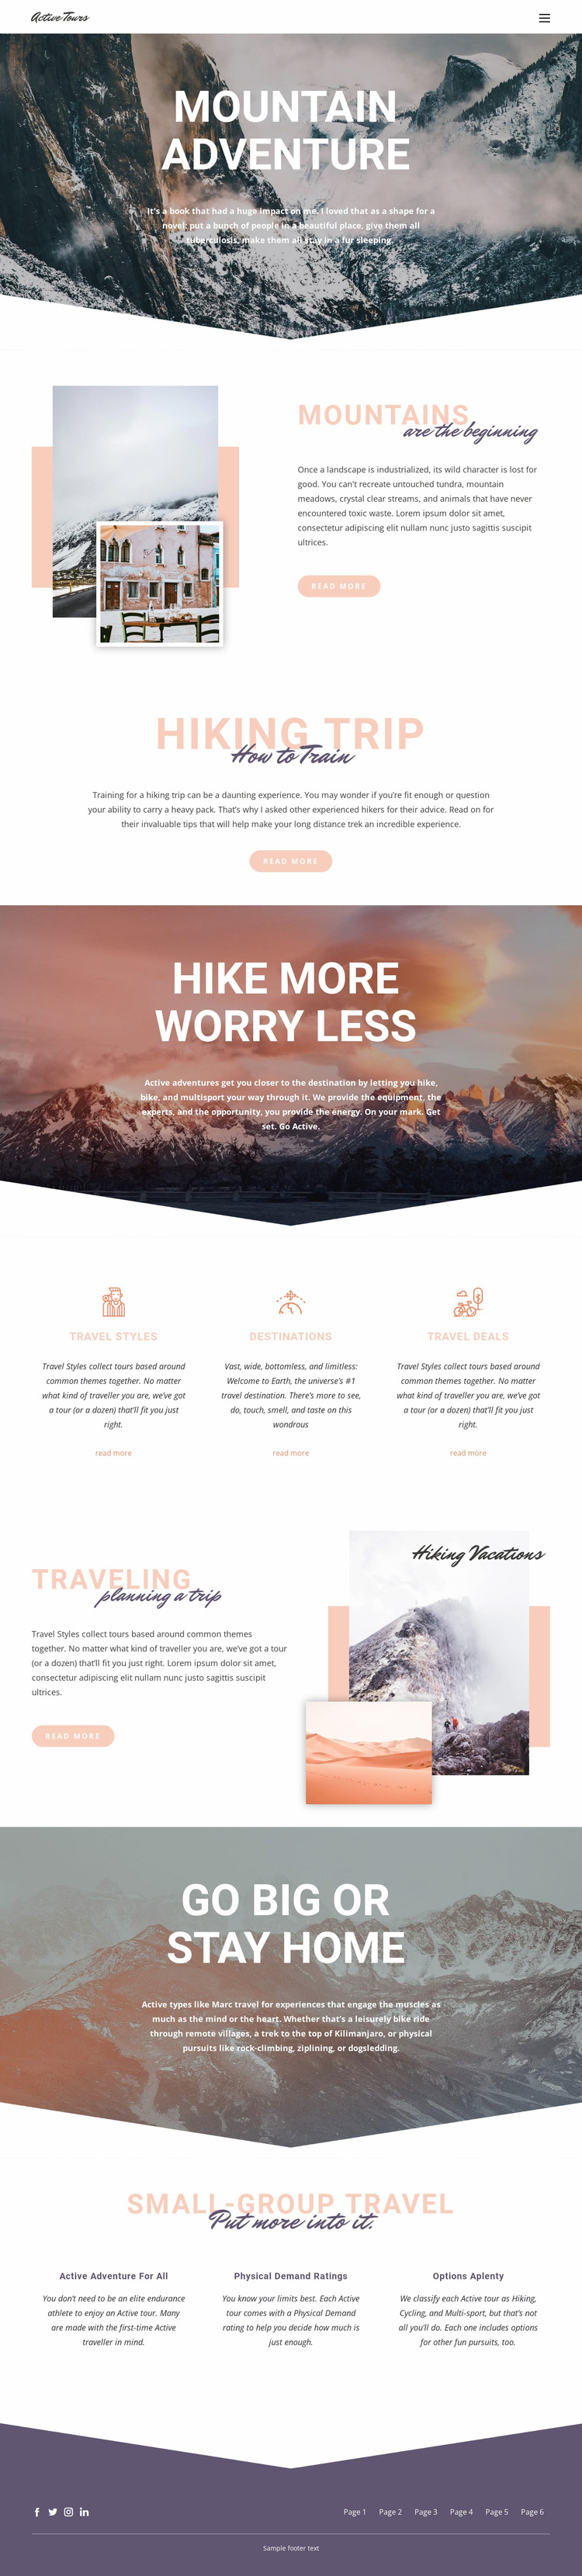 Mountain Adventure WordPress Website Builder